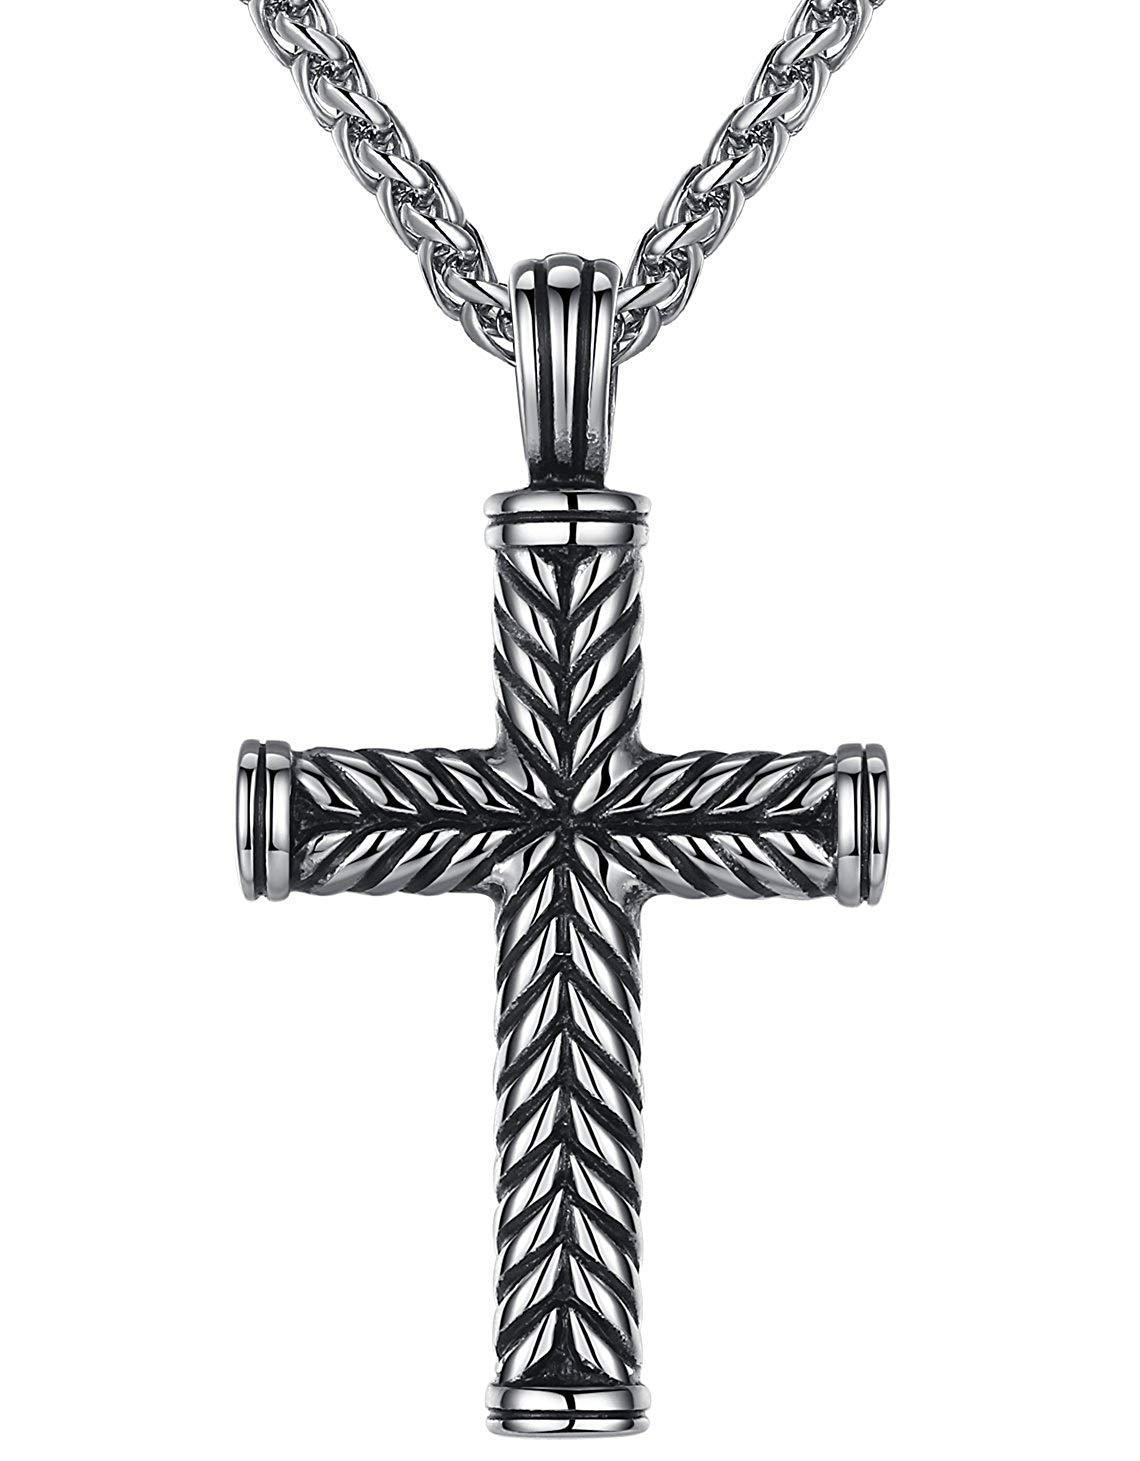 Aoiy Men's Stainless Steel Religious Large Cross Pendant Necklace 24 Link @ Sons of Odin™ - Jewelry